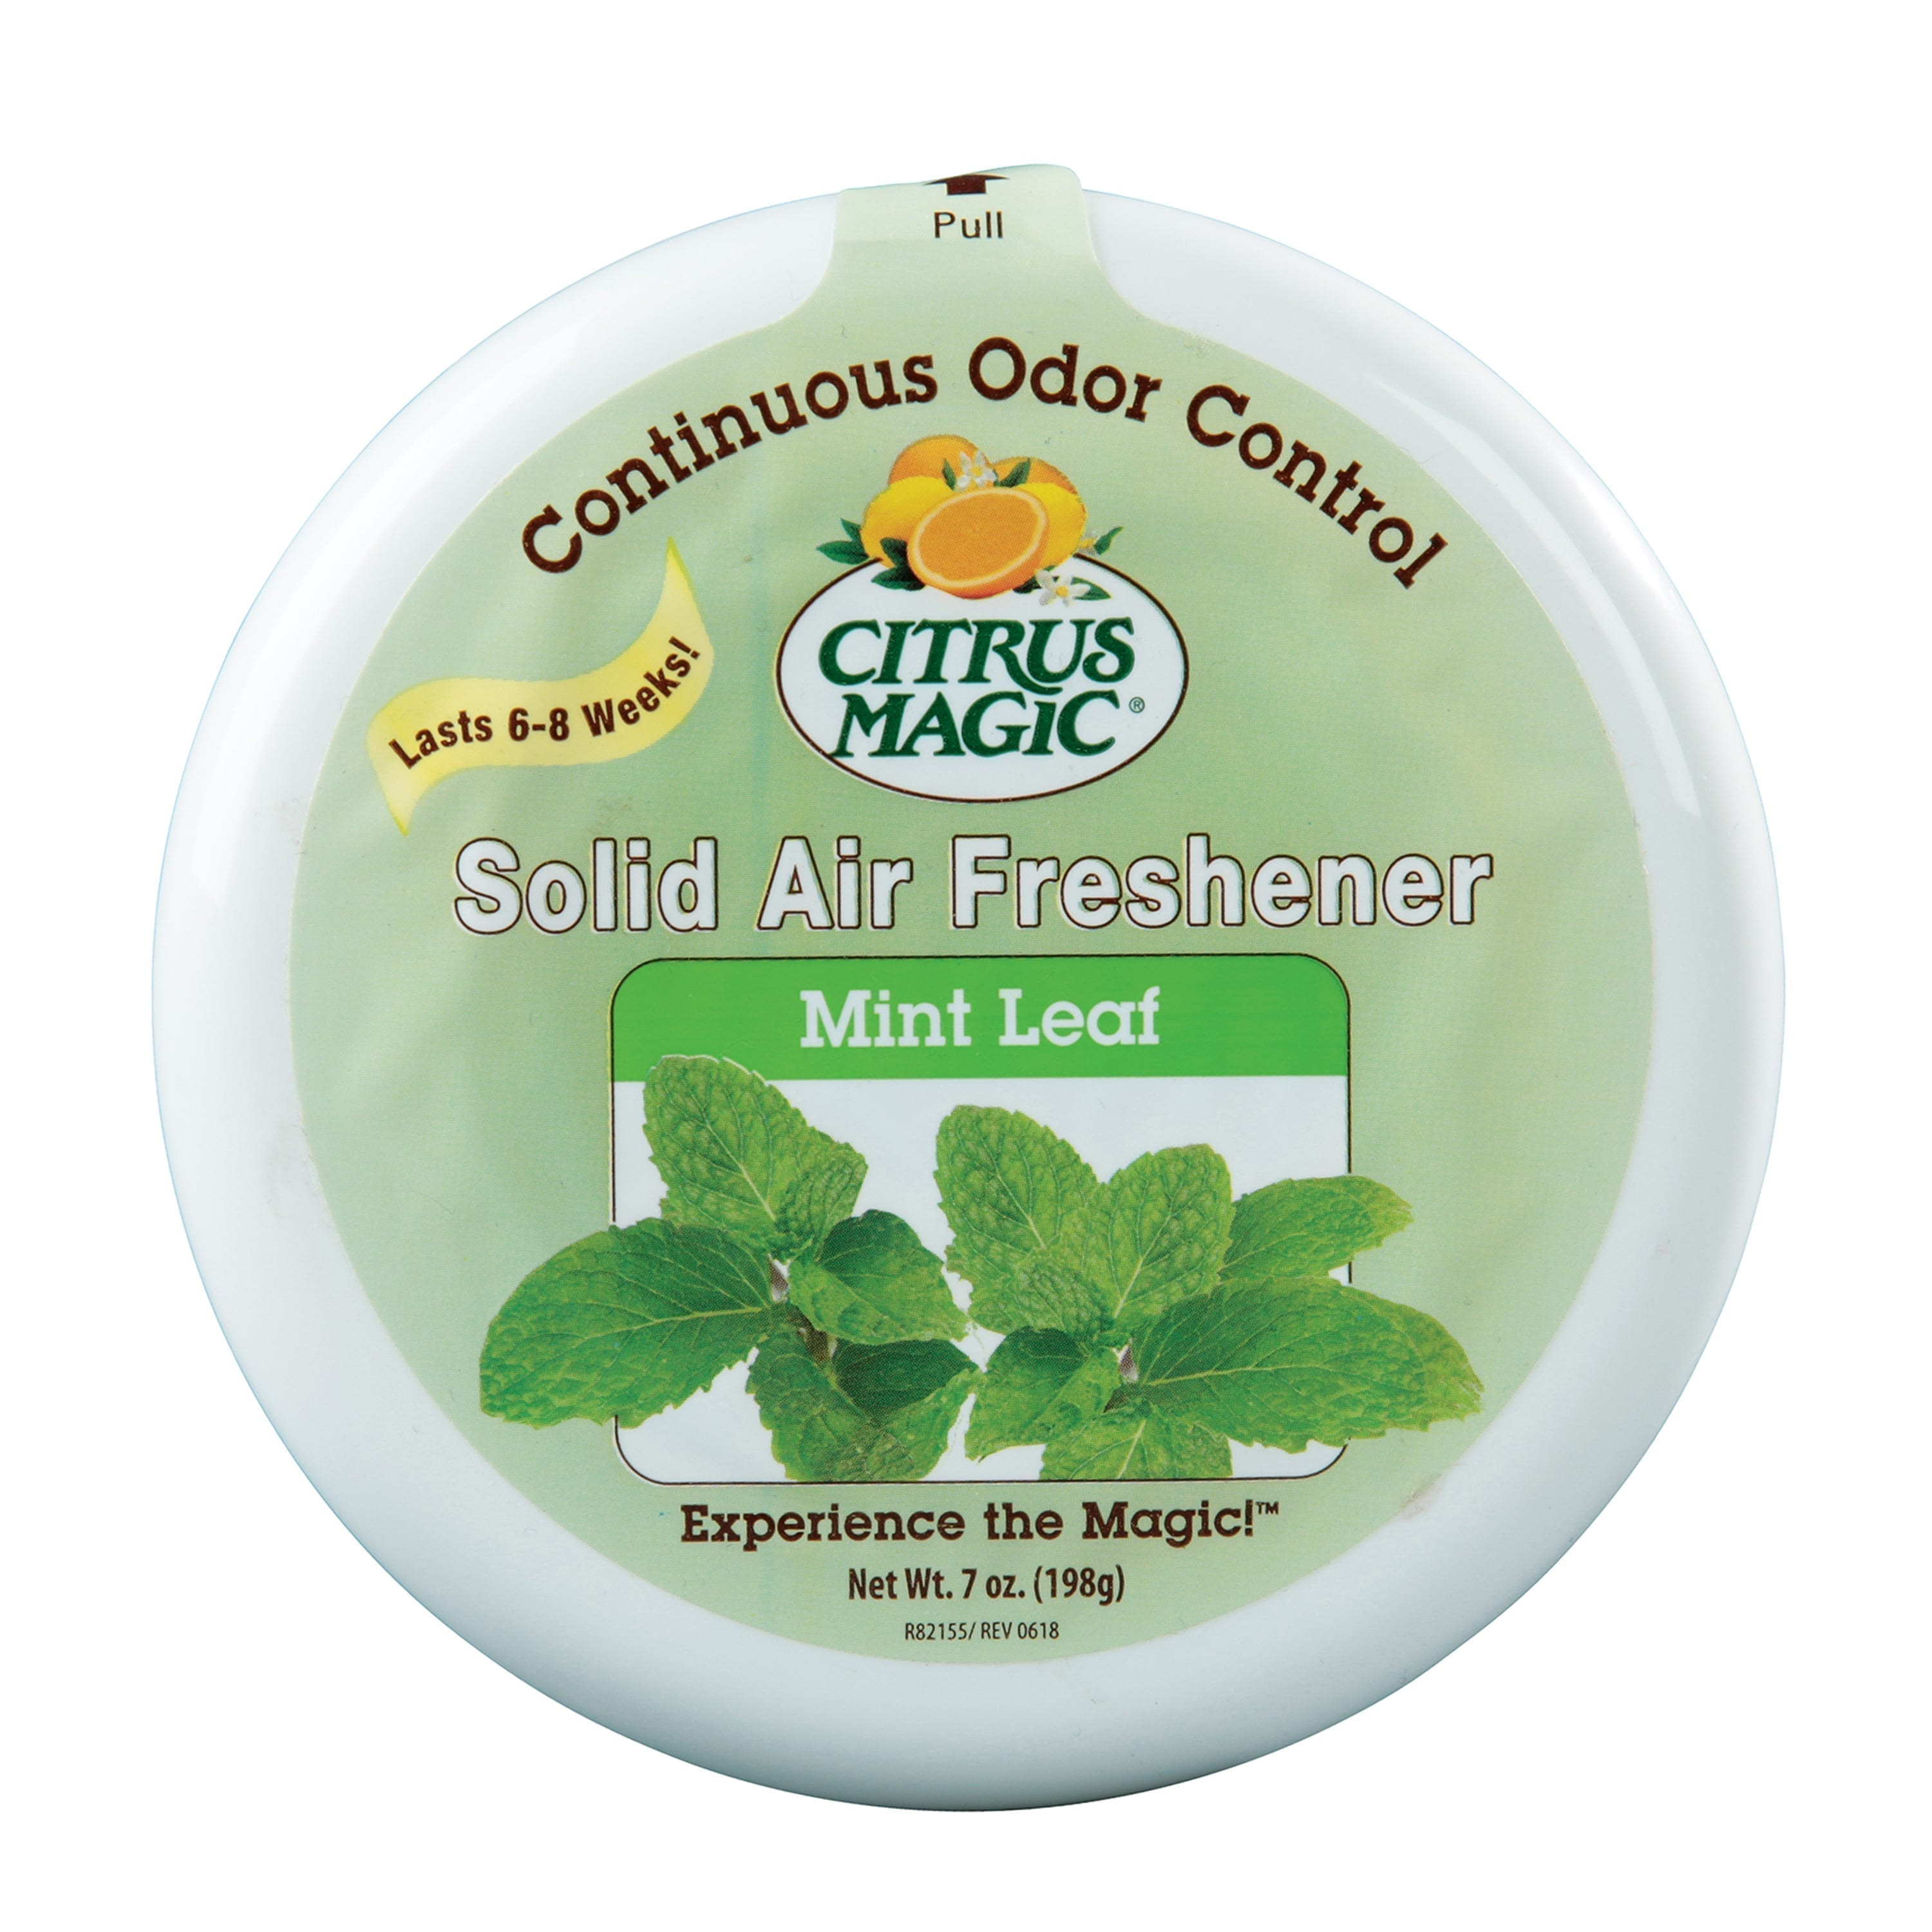 Citrus Magic Odor Absorbing Solid Air Freshener, Mint Leaf